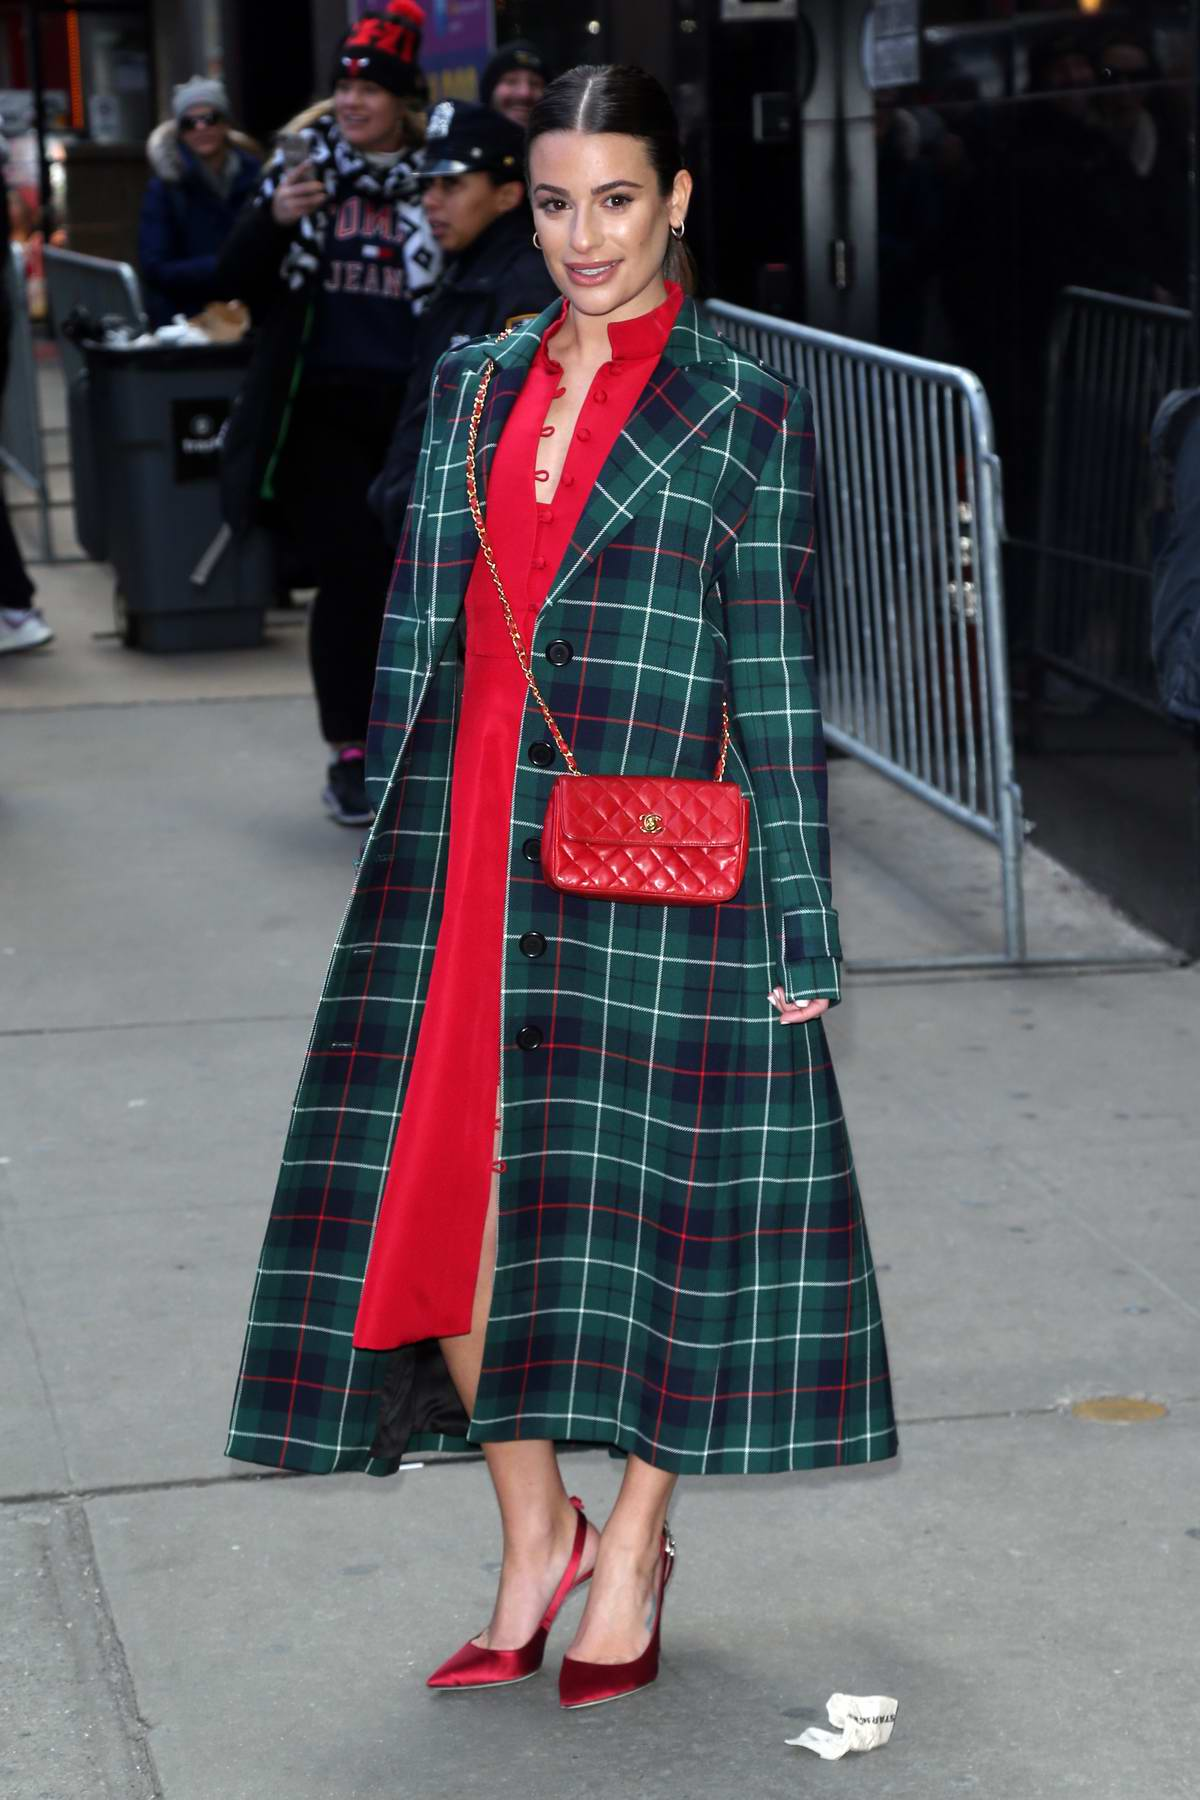 Lea Michele wears a red dress with plaid trench coat as she visits 'Good Morning America' in New York City